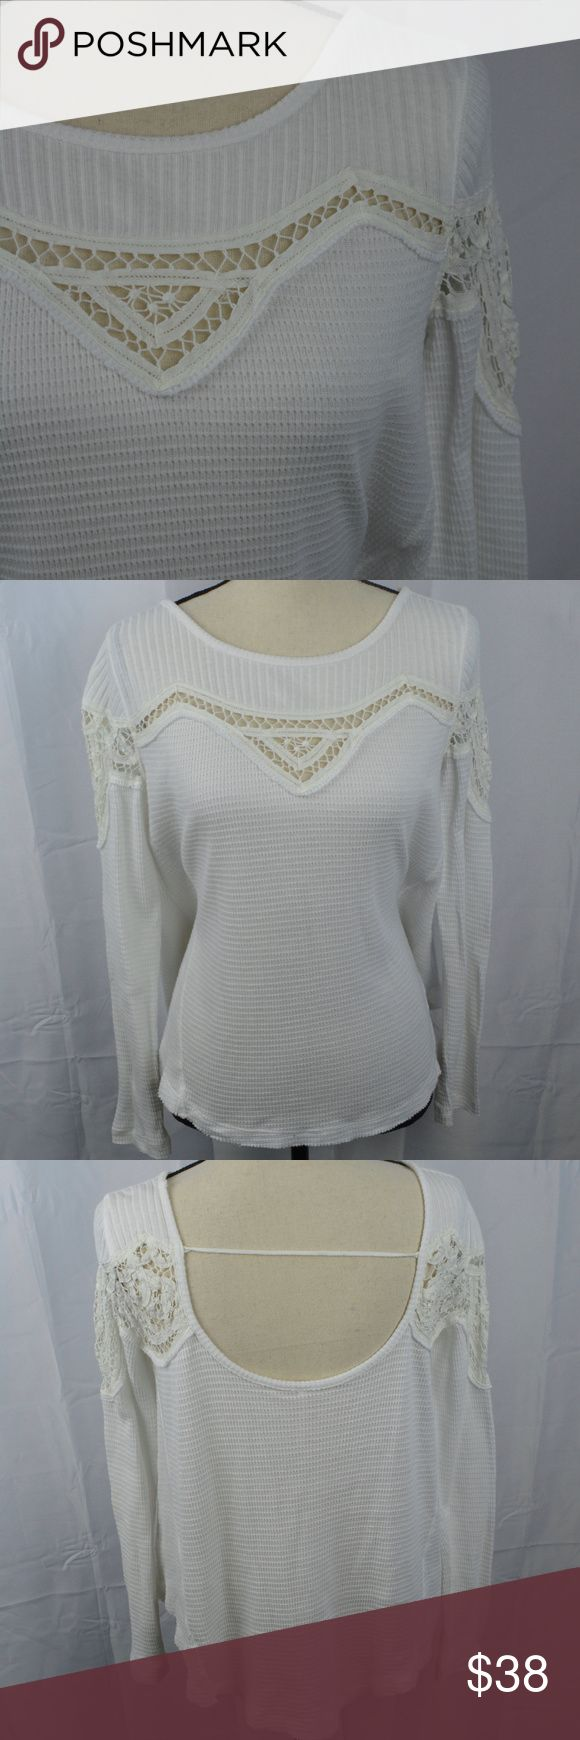 Free People Lace Waffle Weave Thermal Shirt Henley How beautiful! This thermal top by Free People is white with a white crochet lace detail on the shoulders and along the back. It is super soft and feels like a dream on. What a perfect way to add some bohemian vibes to your closet! ~Women's Size XS Feel free to ask questions! Free People Tops Tees - Long Sleeve